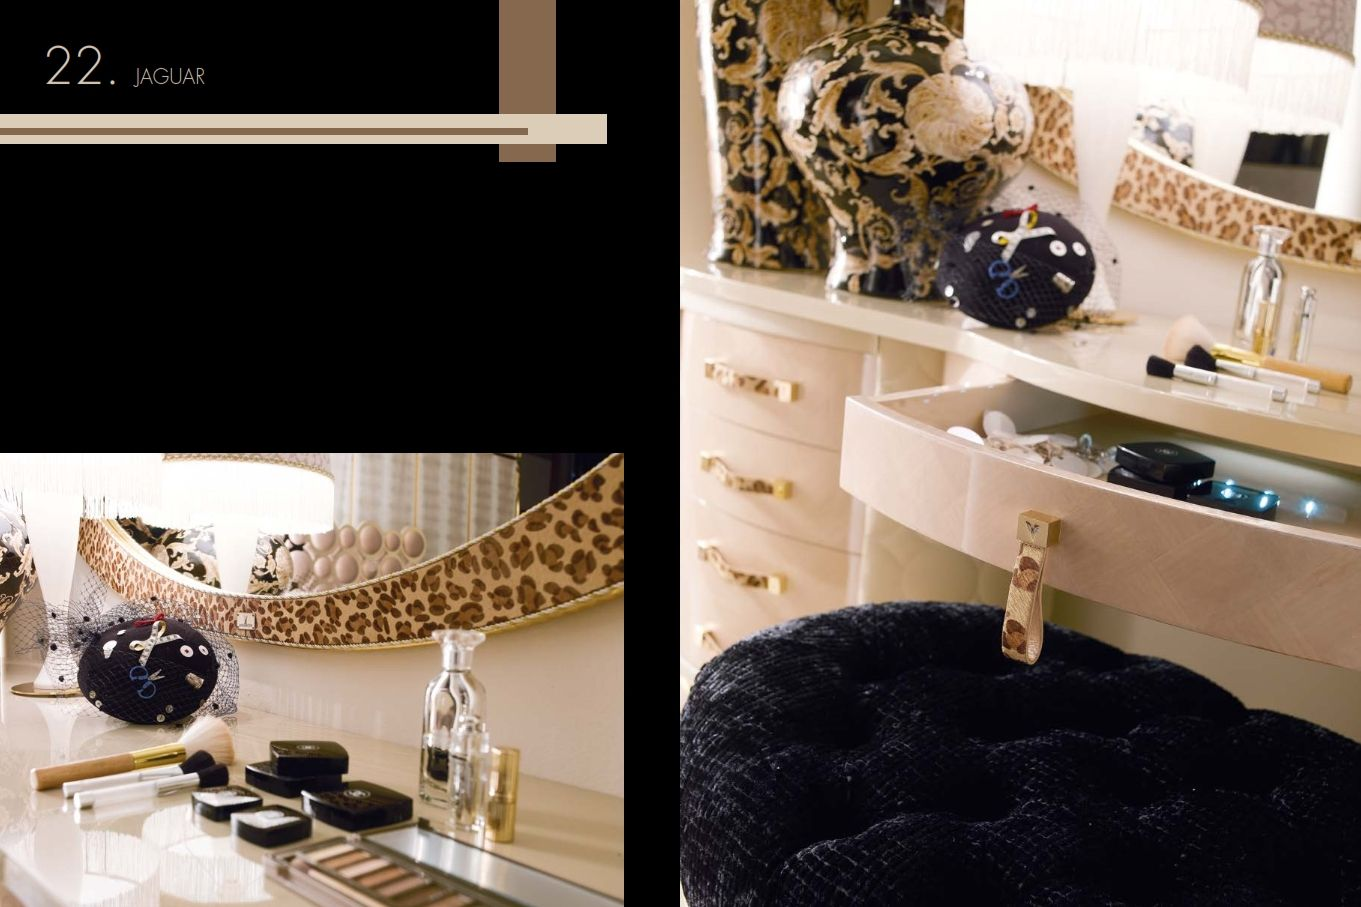 luxus m bel luxus schlafzimmer alta moda jaguar seriedie. Black Bedroom Furniture Sets. Home Design Ideas